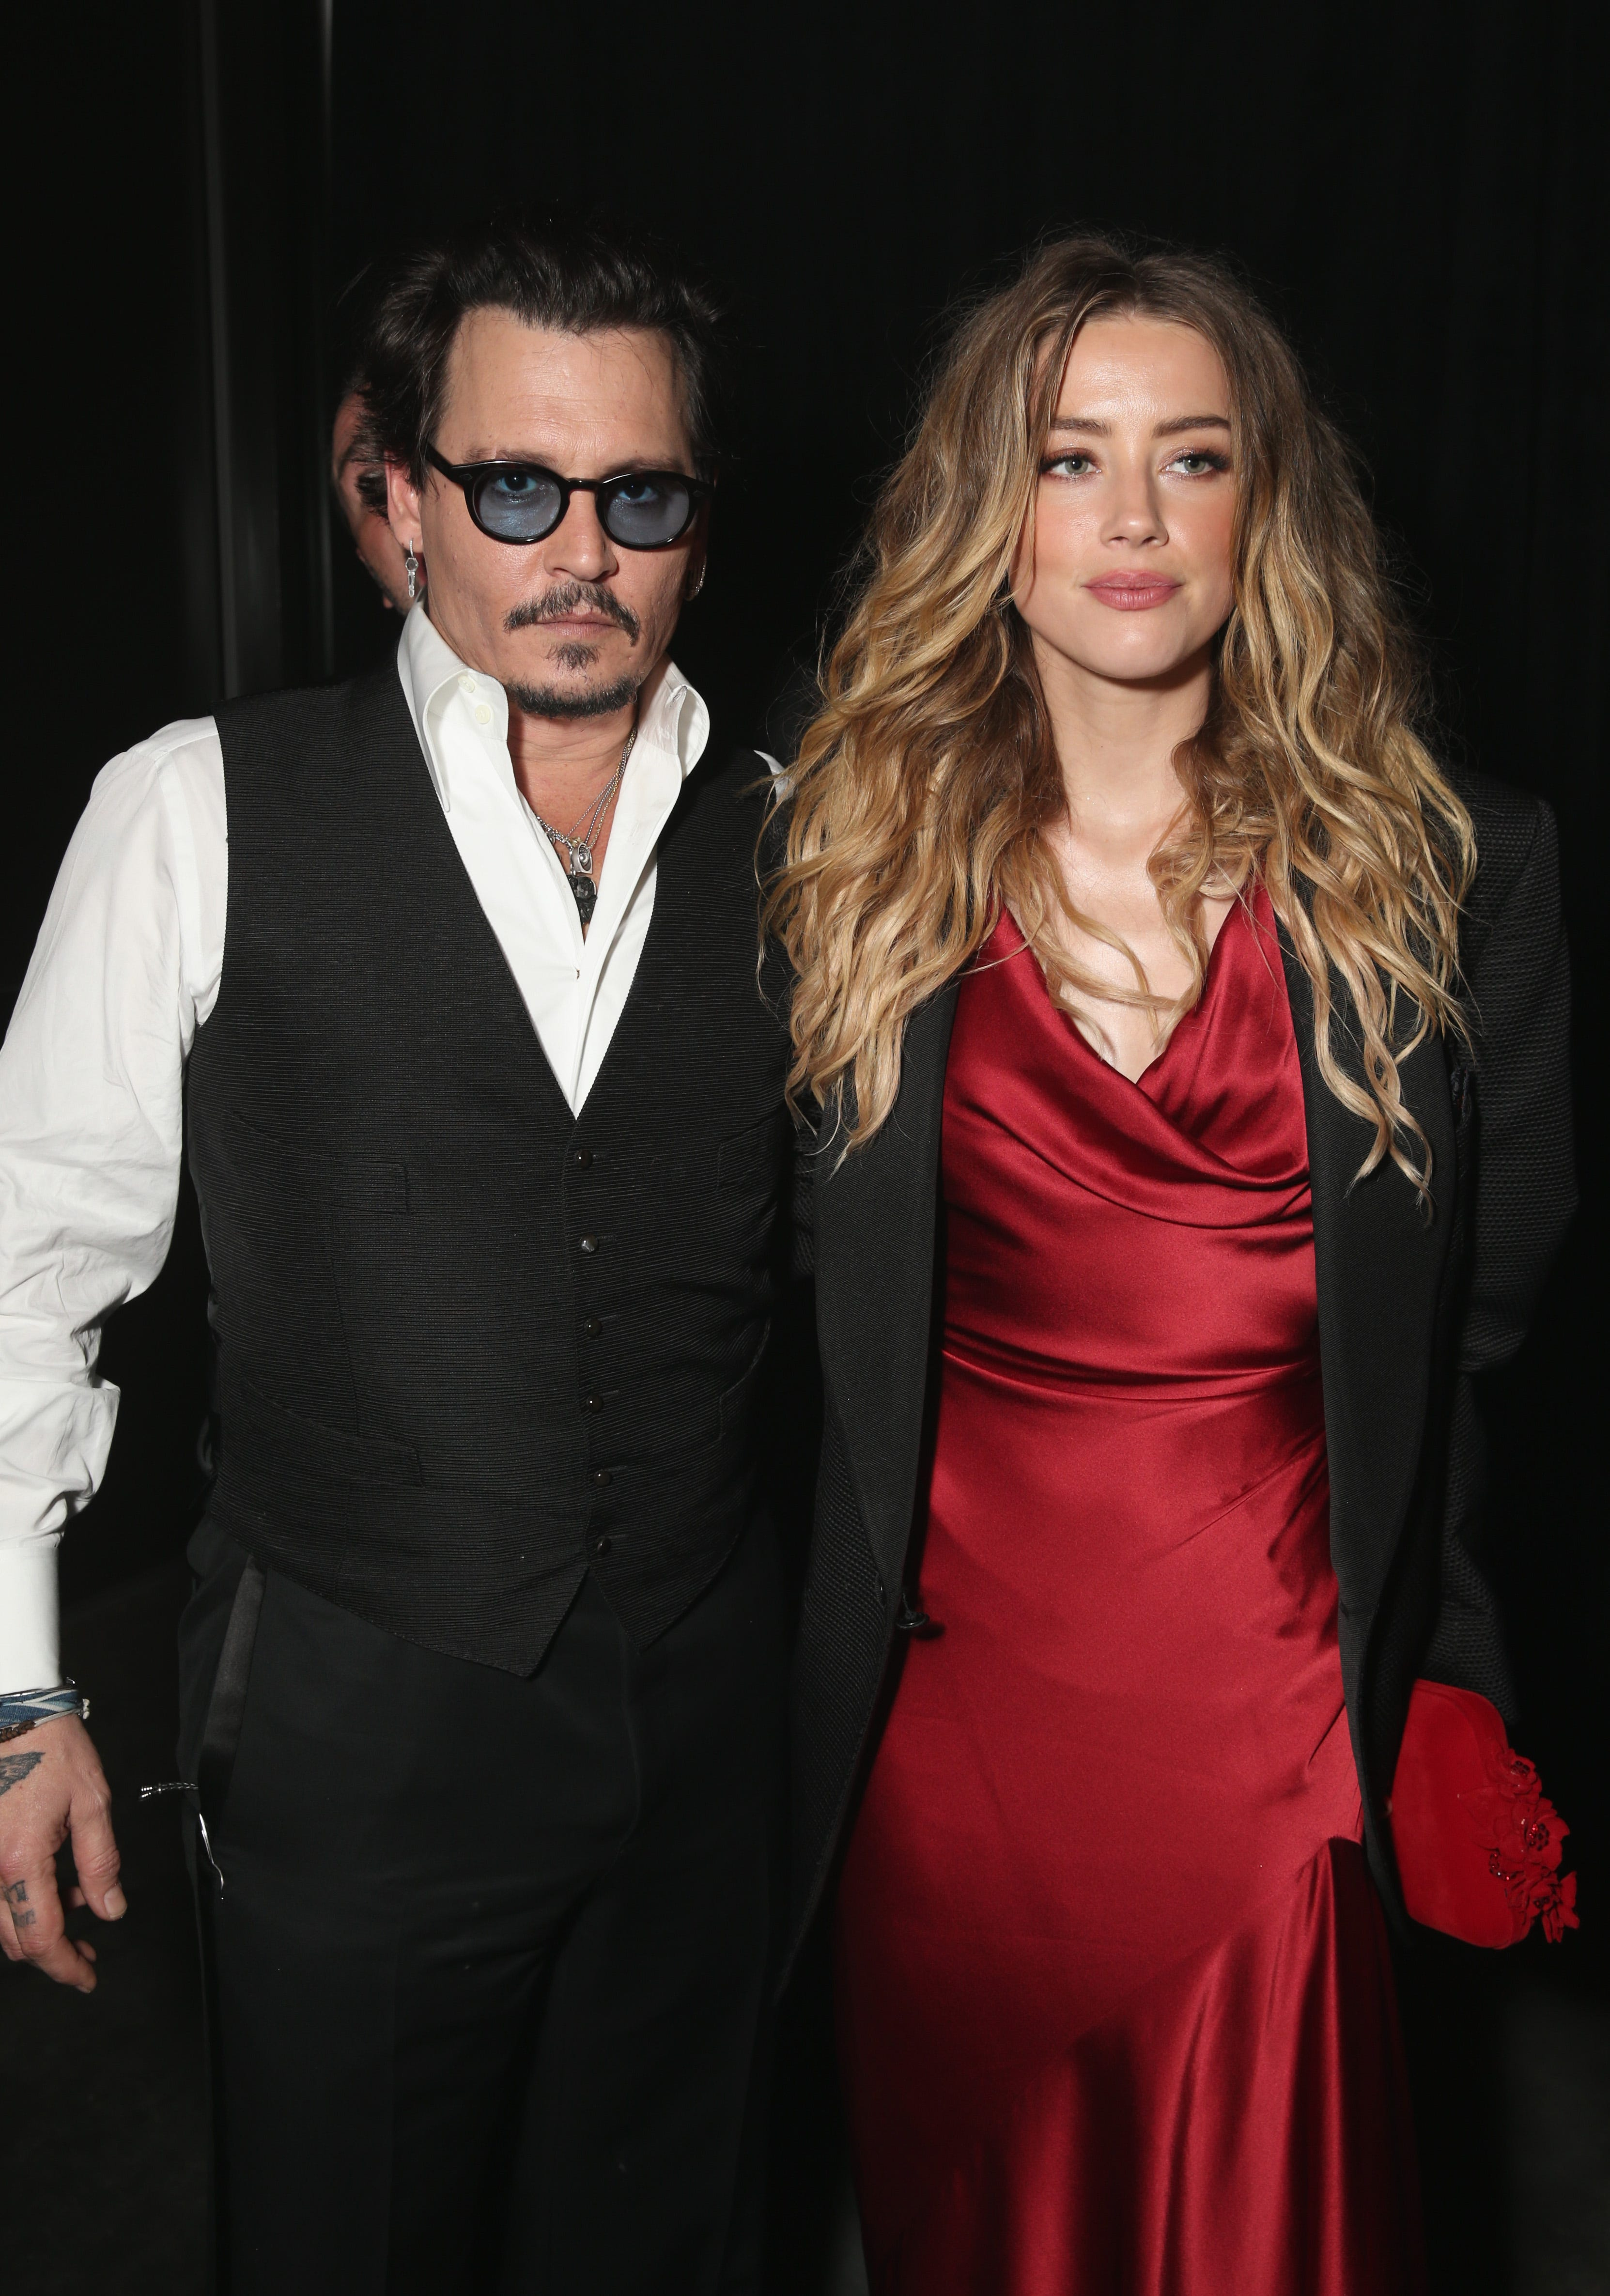 Johnny Depp Reportedly Tried To Get Amber Heard Fired From Aquaman